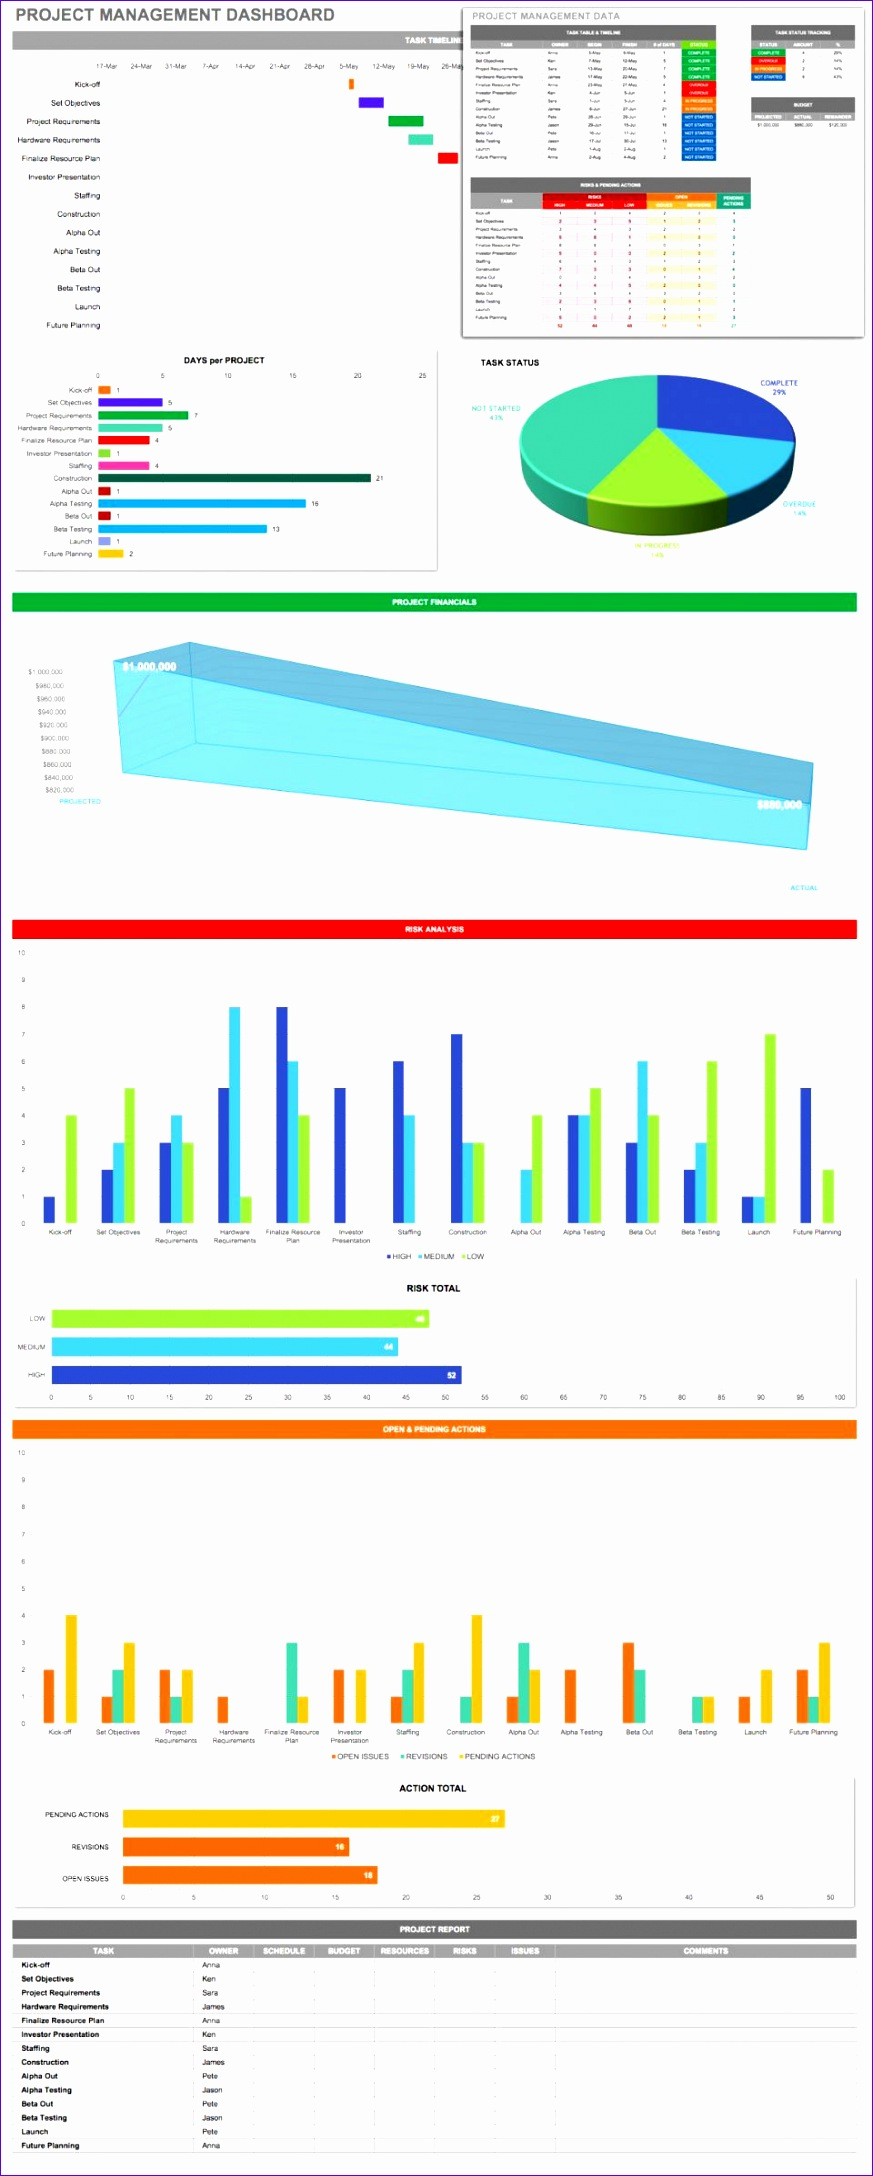 IC Project Management Dashboard 32 Templates itok=7gyF2Dz0